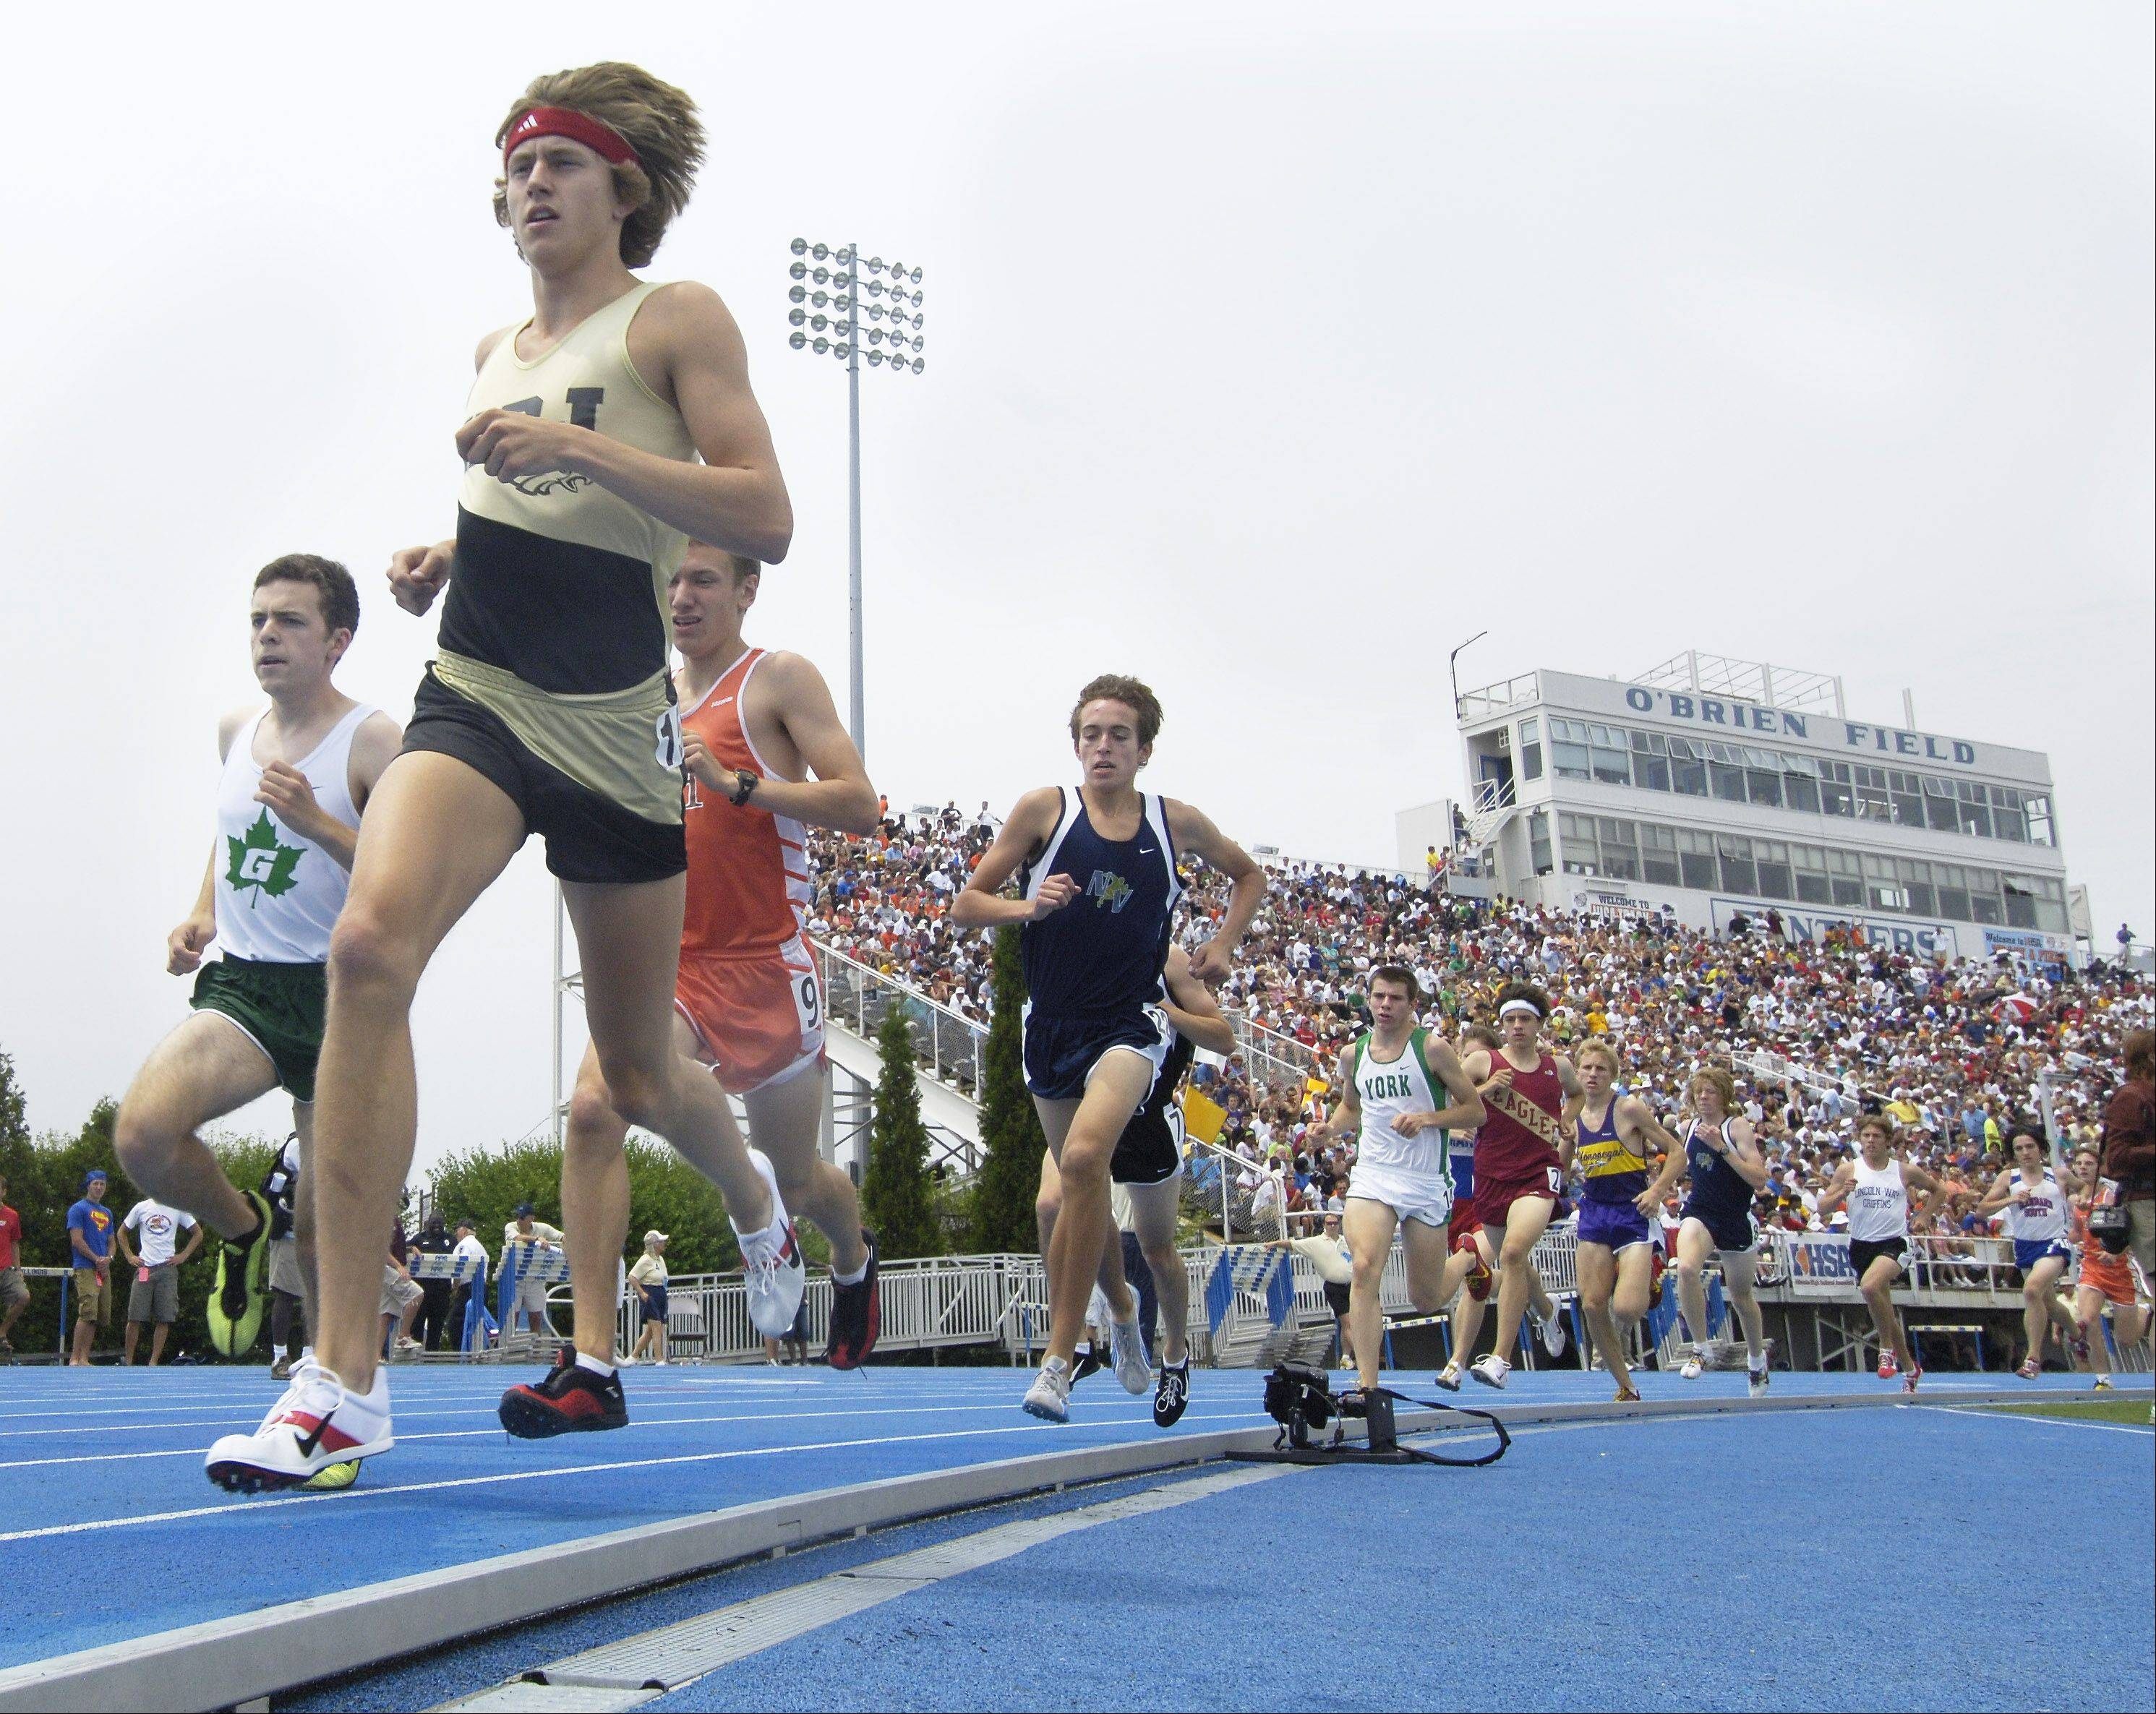 Evan Jager of Jacobs High School leads the pack during a distance race at the 2007 state boys track finals at Charleston.